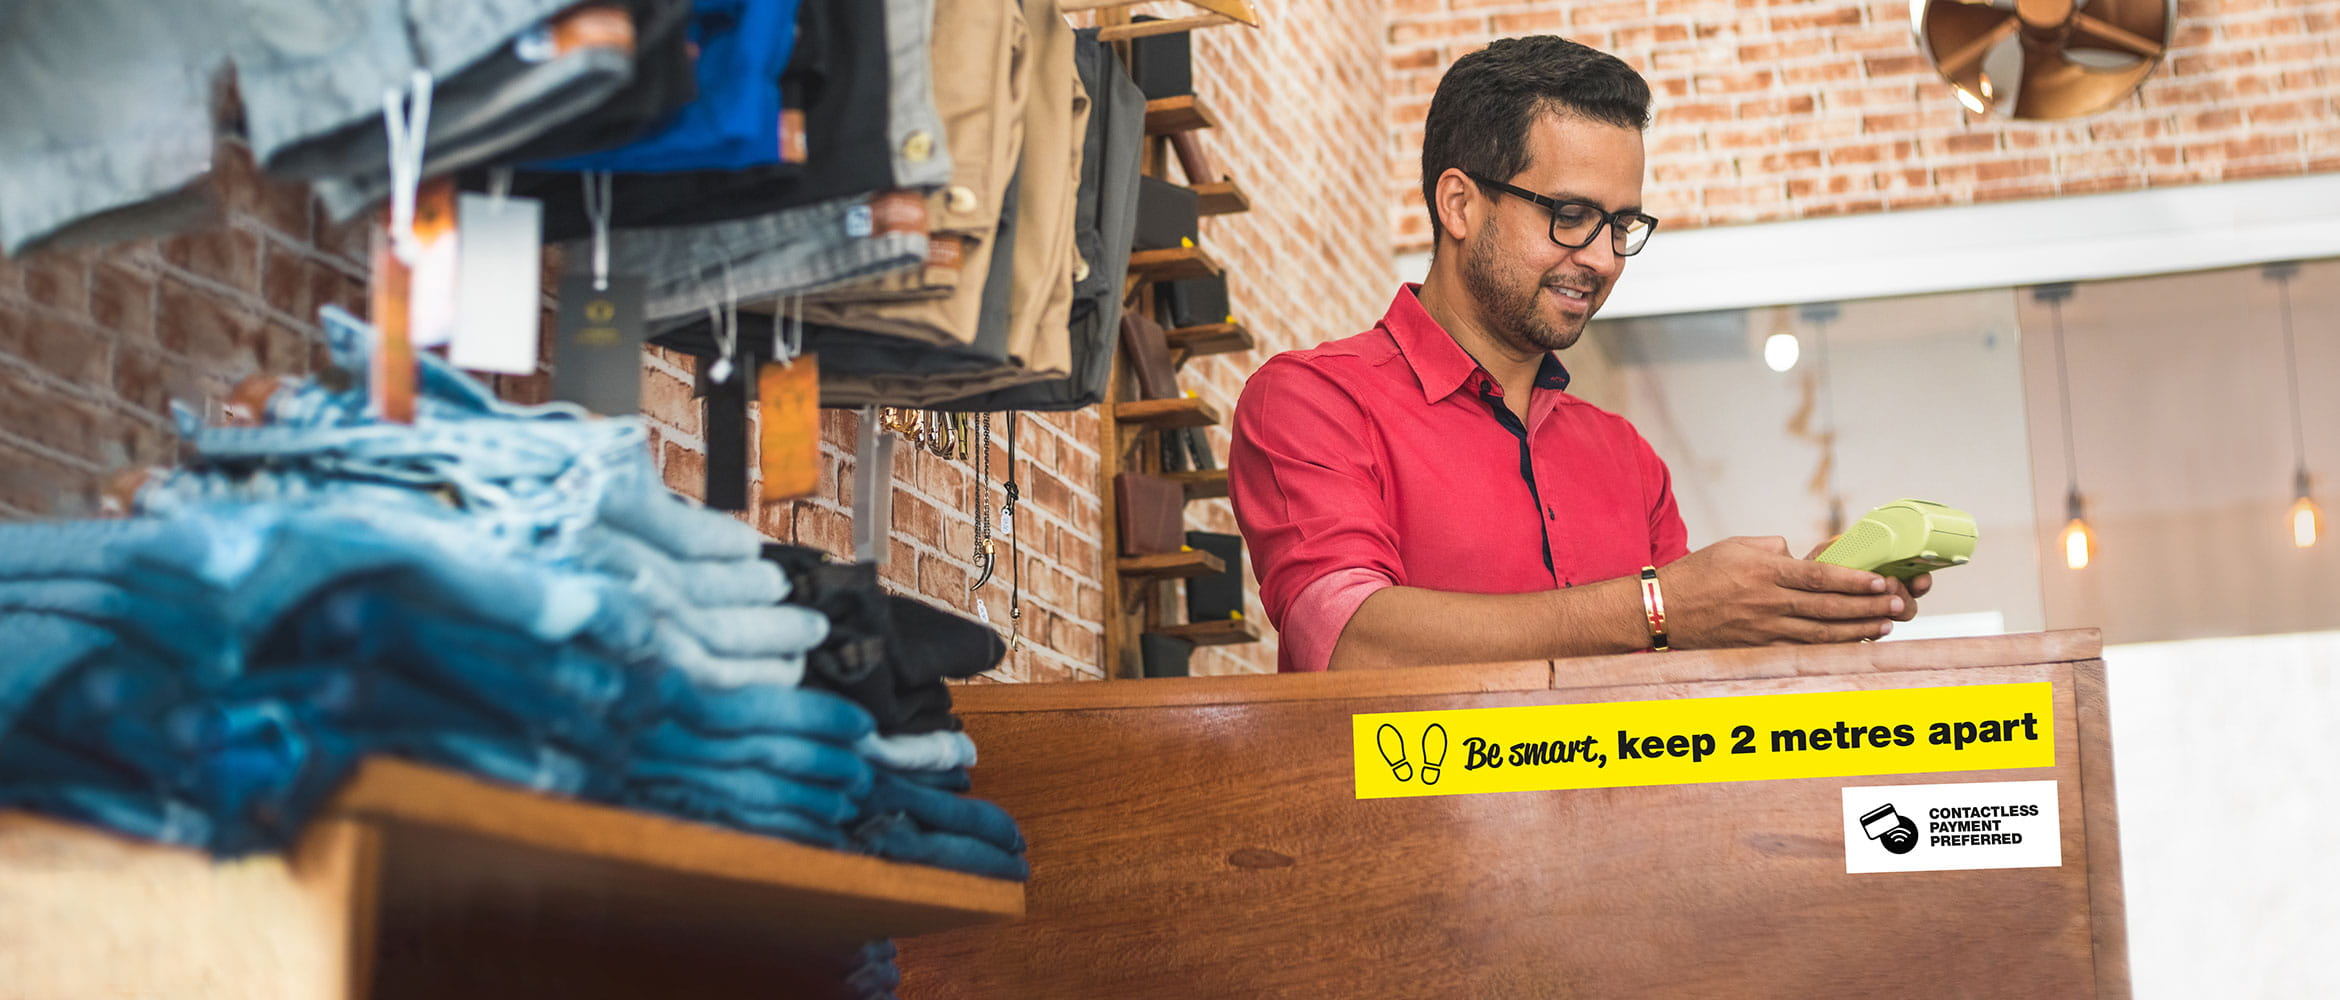 man taking a payment behind a till in a retail environment